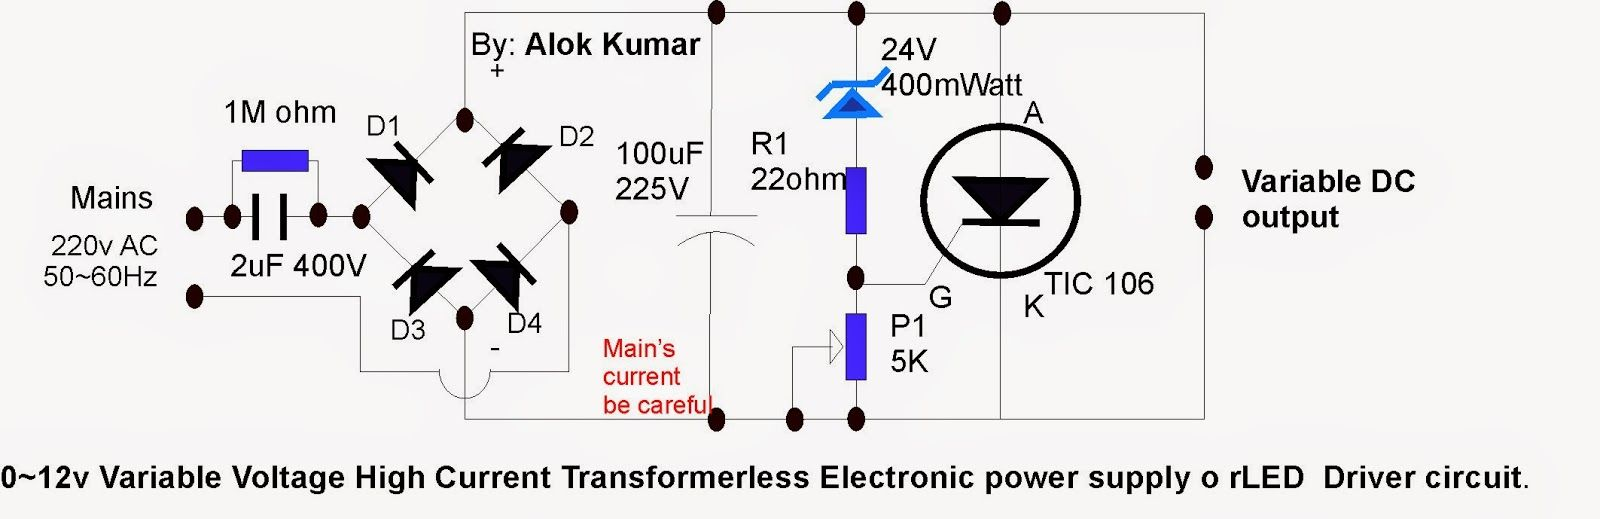 hight resolution of electronic circuits transformerless power supply led drivers battery chargers solar circuits how to make 0 to 12v variable high current transformerless